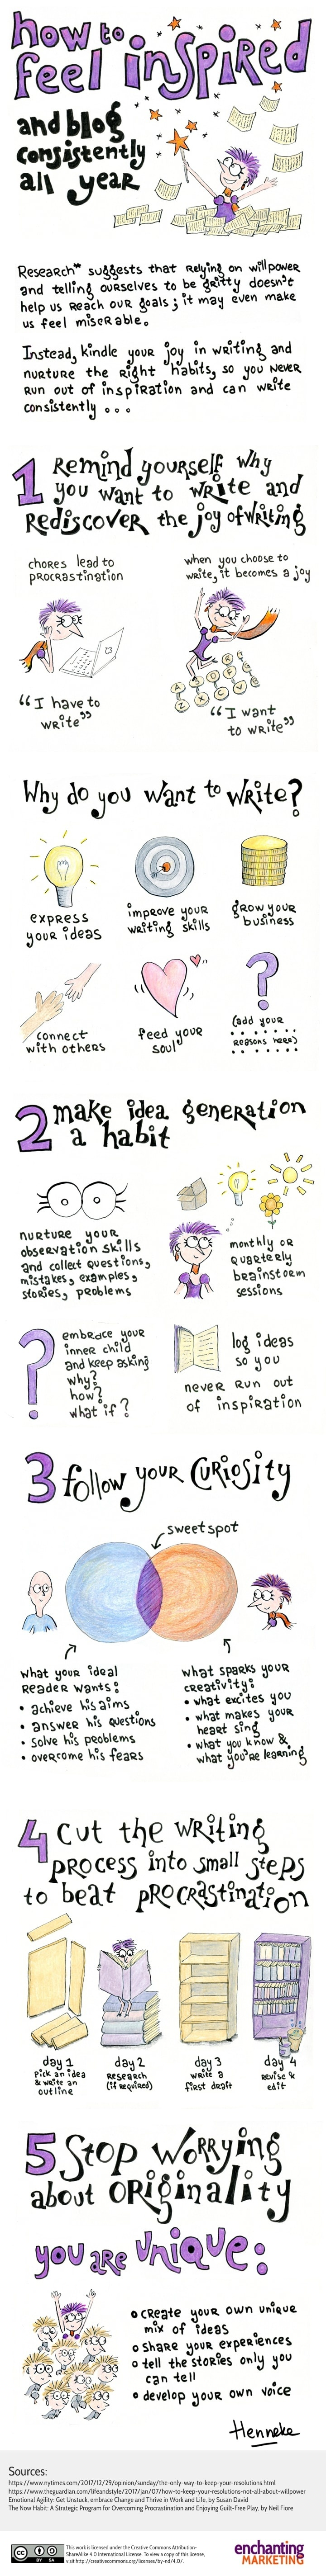 Get-inspired-to-write-and-blog-consistently-infographic